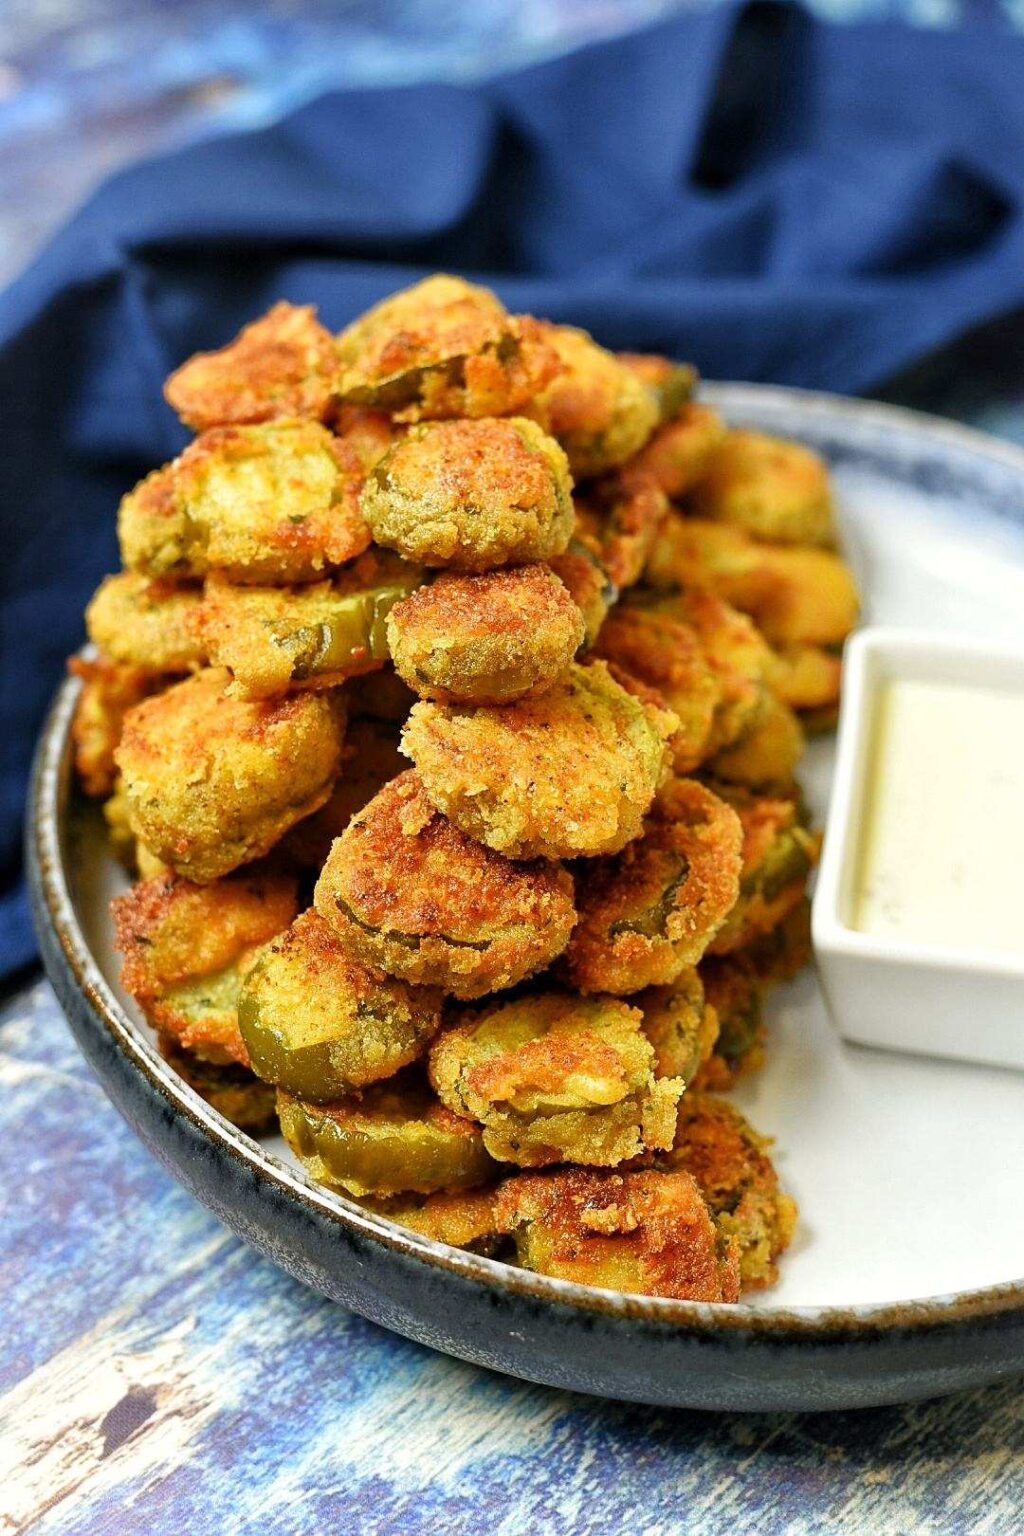 Creole Fried Pickles with a side of -ranch dressing for dipping